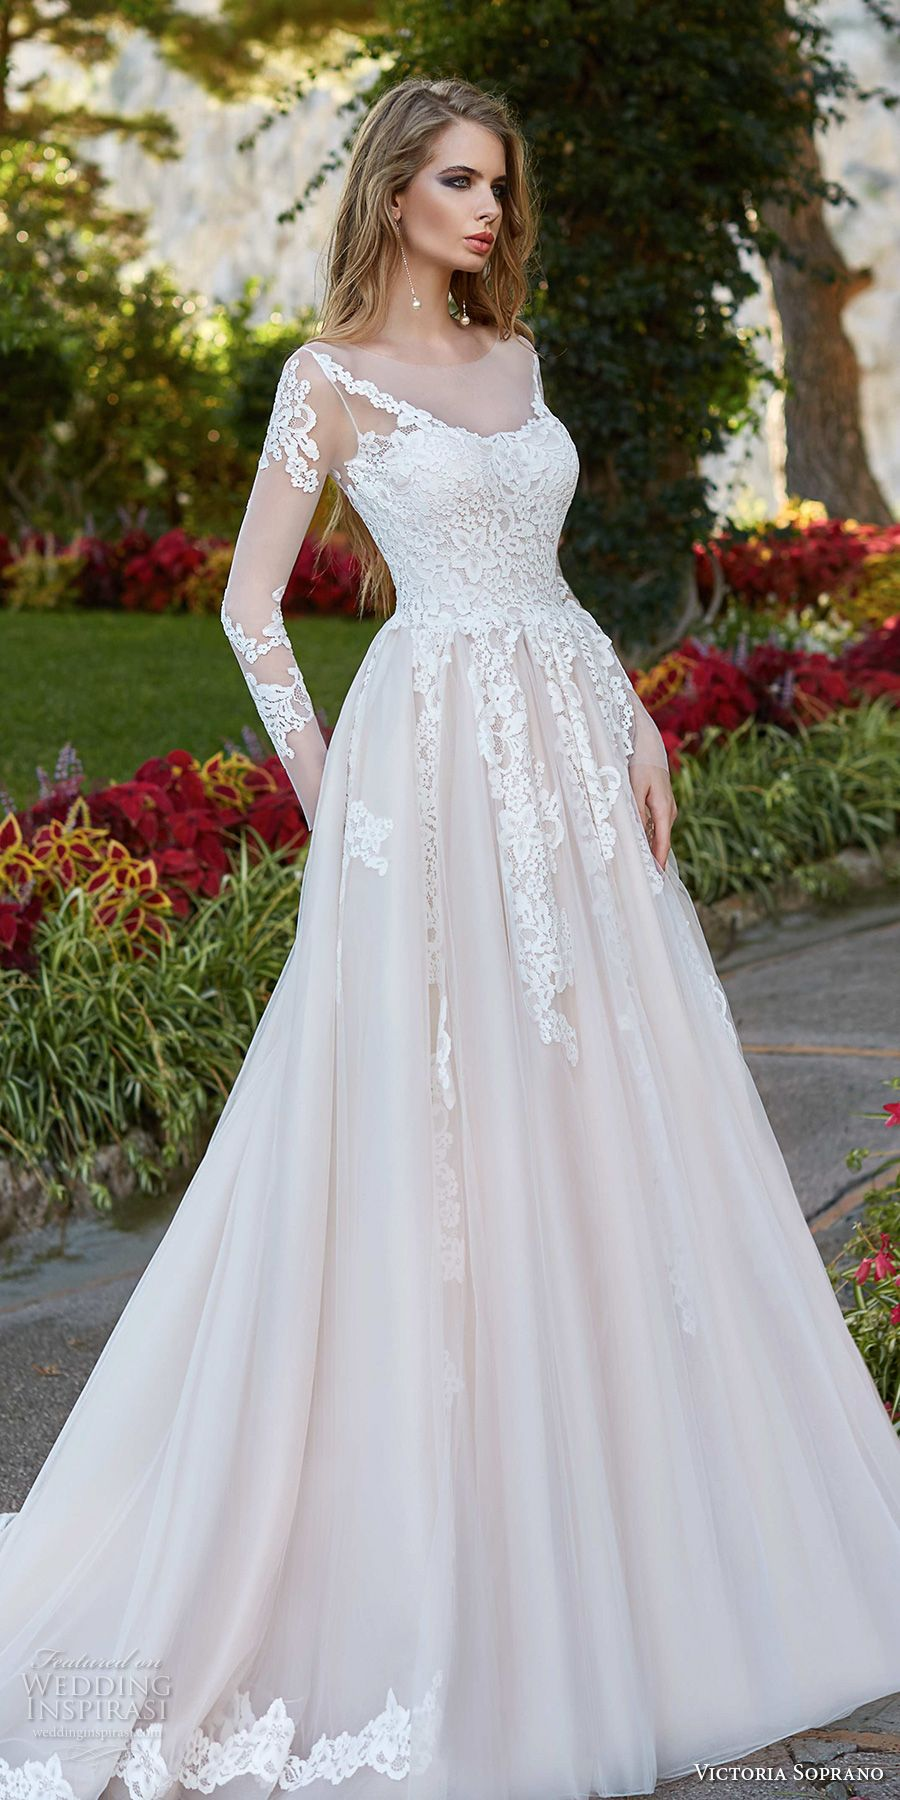 Victoria soprano wedding dresses u uccapriud bridal collection